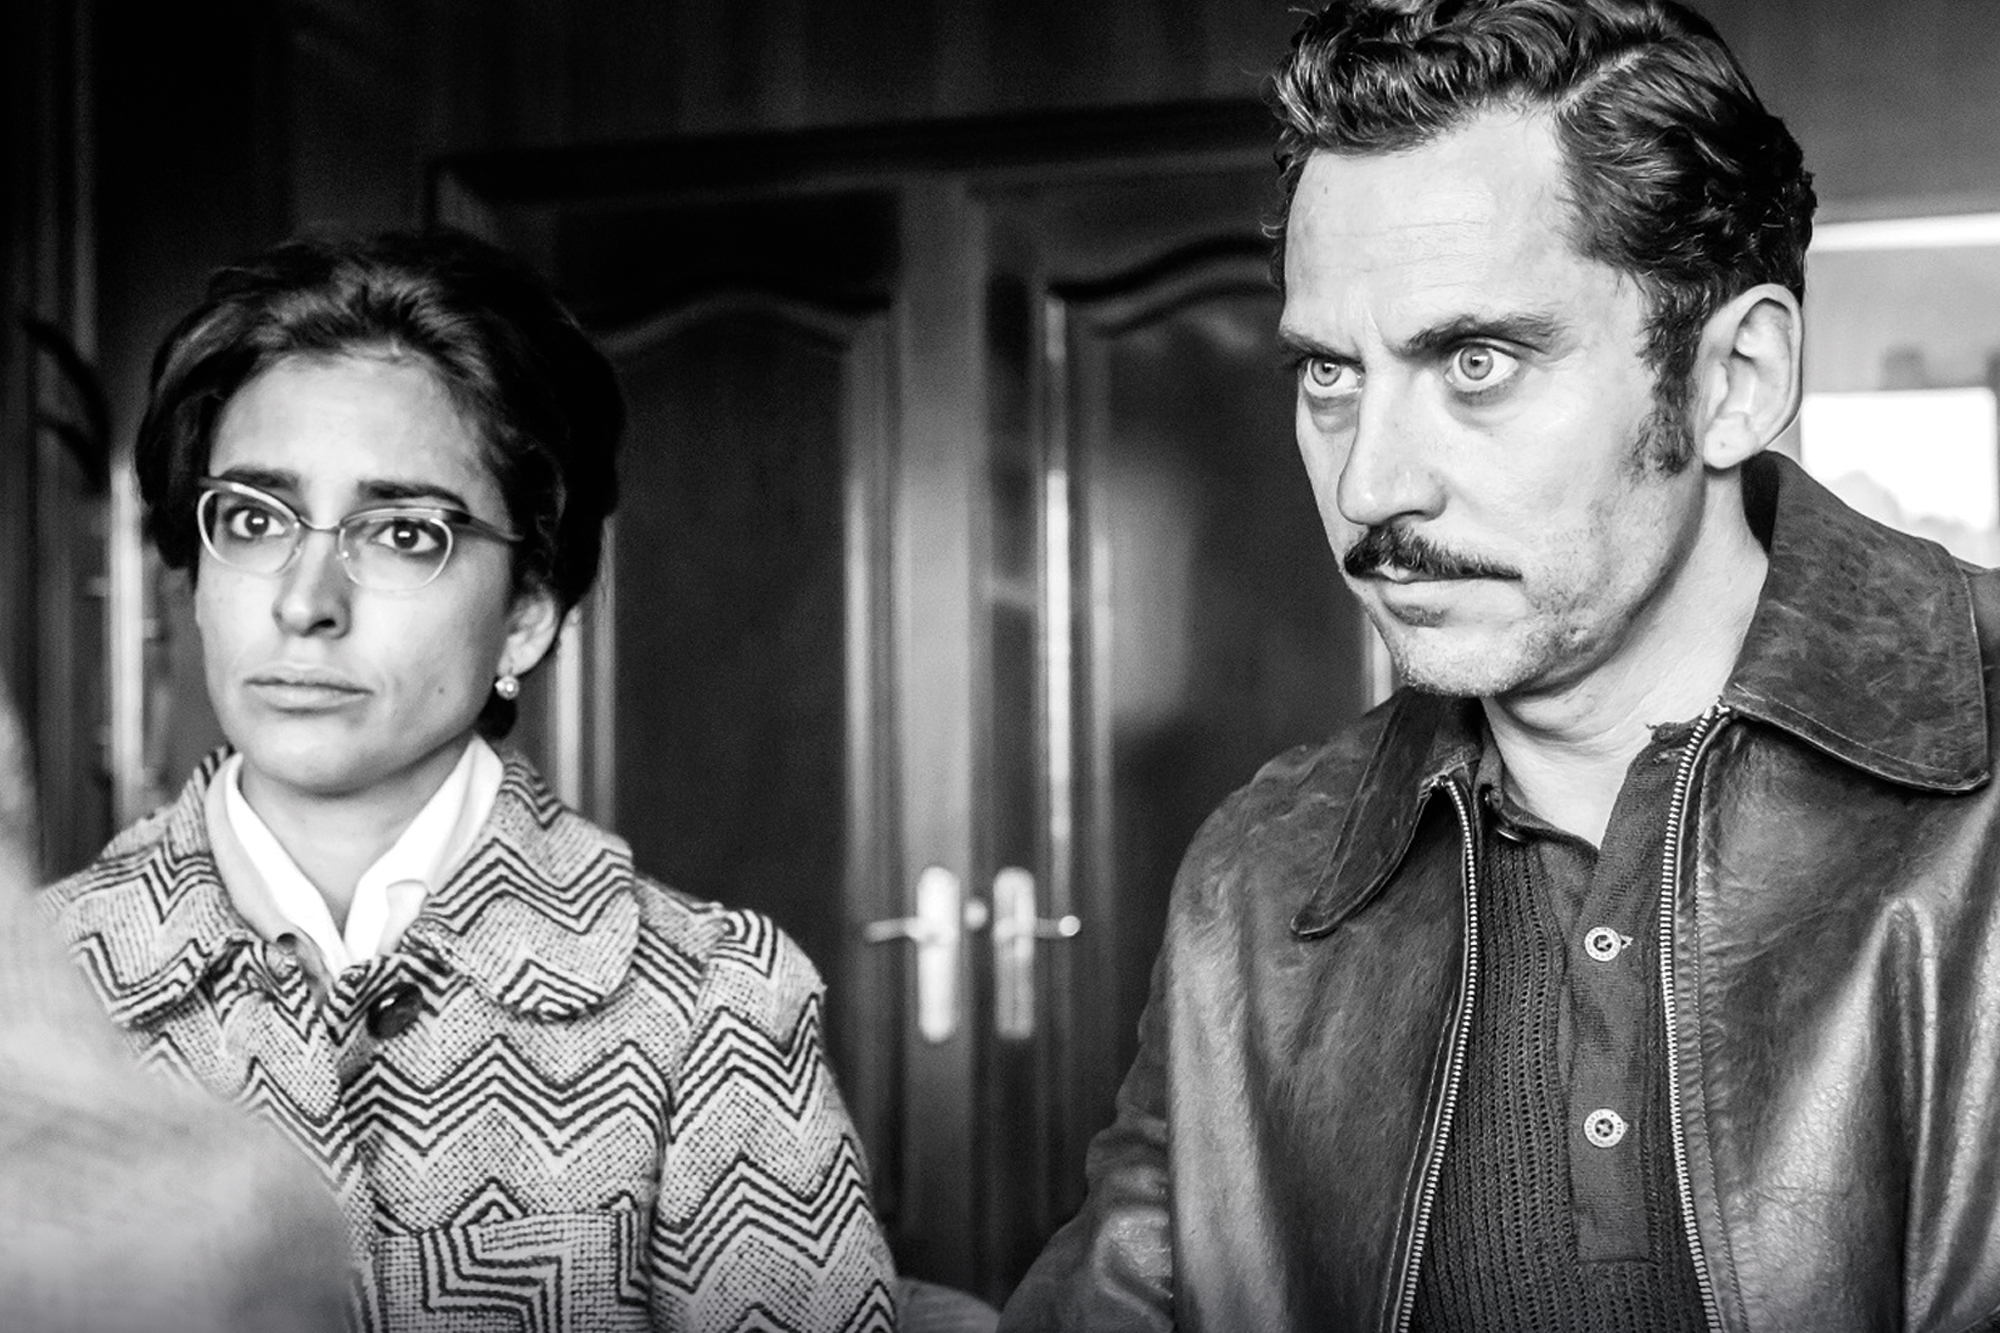 Black And White Madrid mhz choice to premiere critically acclaimed dramedy arde